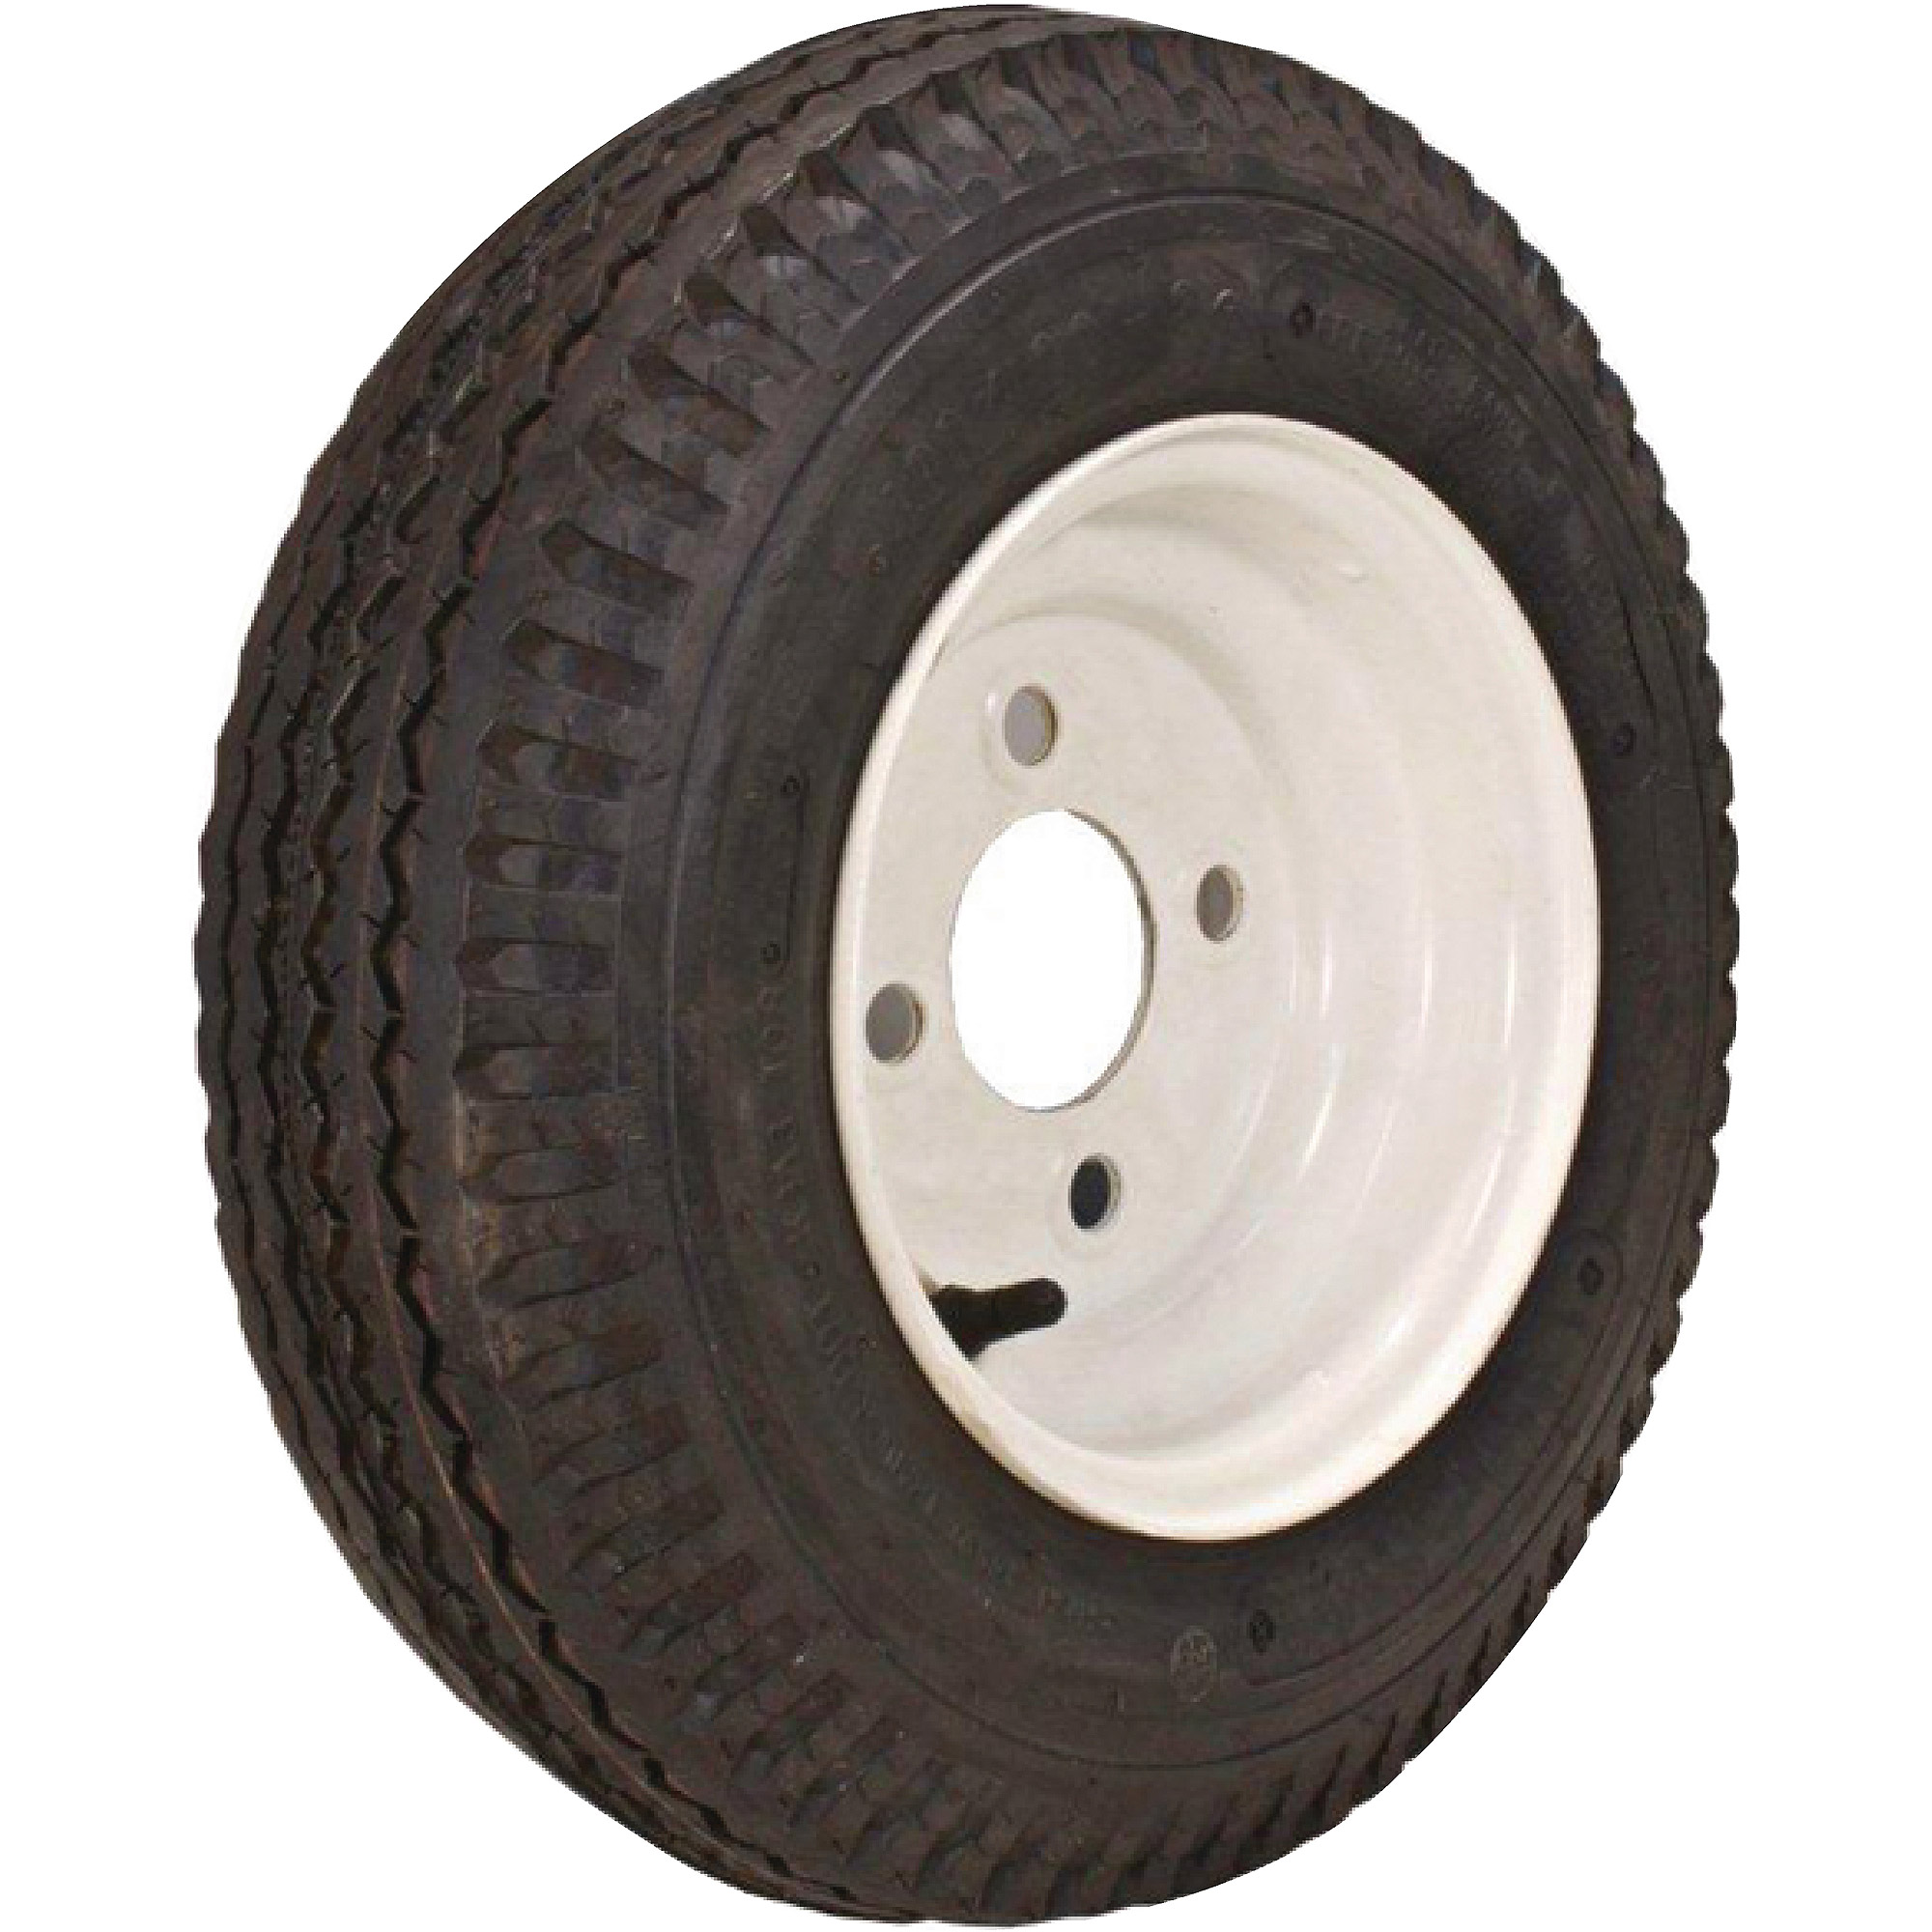 2 Pack Trailer Tire On Rim St205 75d15 205 75 D 15 In Lrc 5 Hole